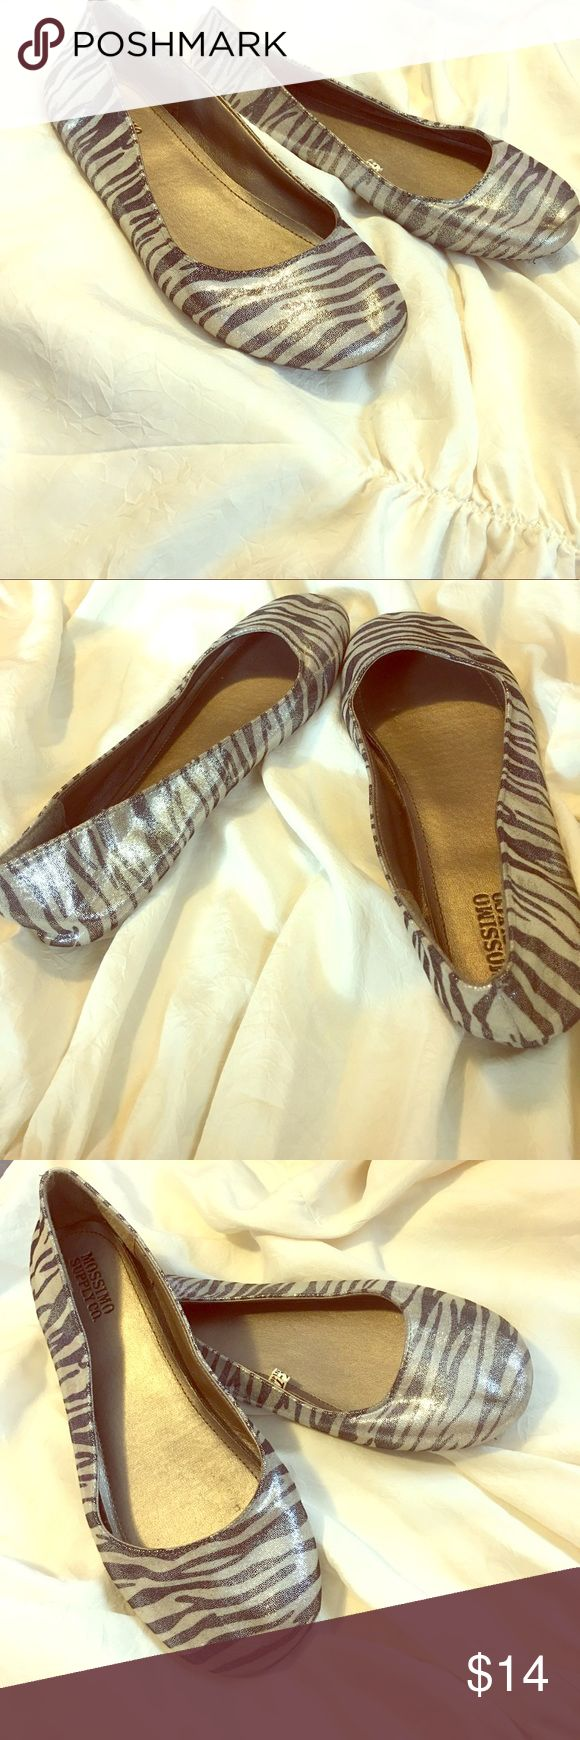 Mossimo Supply Co. Silver Zebra Shoes Mossimo Supply Co. Silver Zebra Shoes. Size 7. New Without Tags. Beautiful shimmer fabric with a bendable sole. This shoe goes with so many things.❤️ Mossimo Supply Co. Shoes